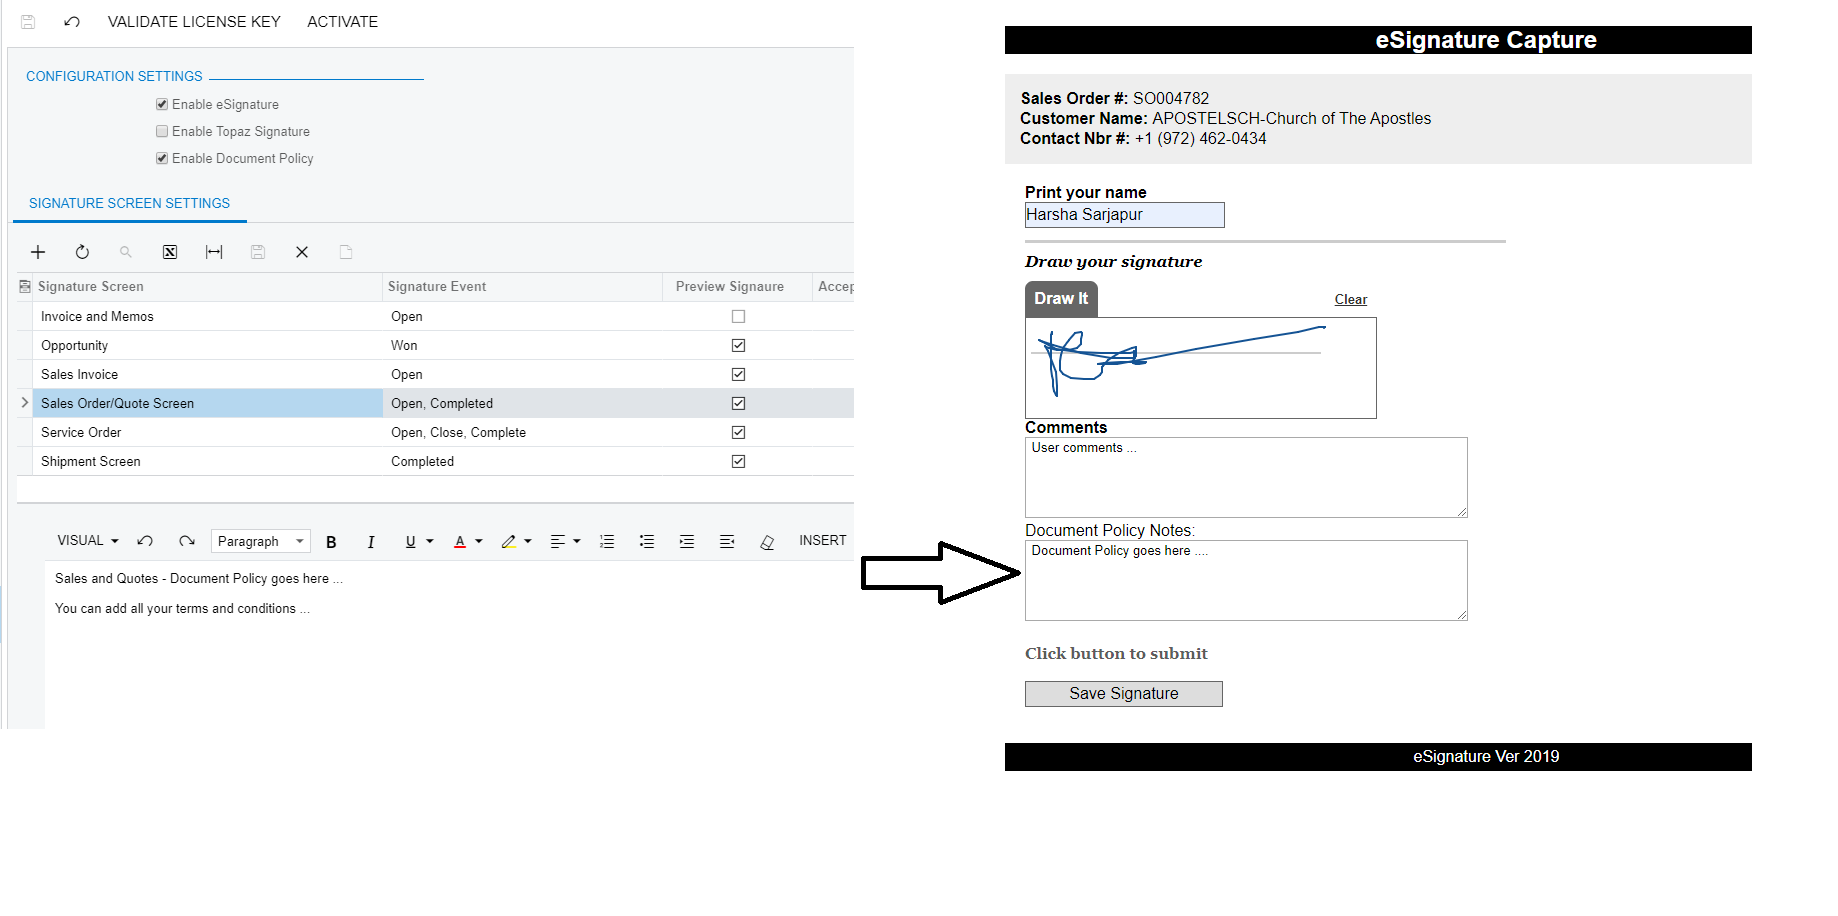 Signature capture On Sales Order screen With Document Policy